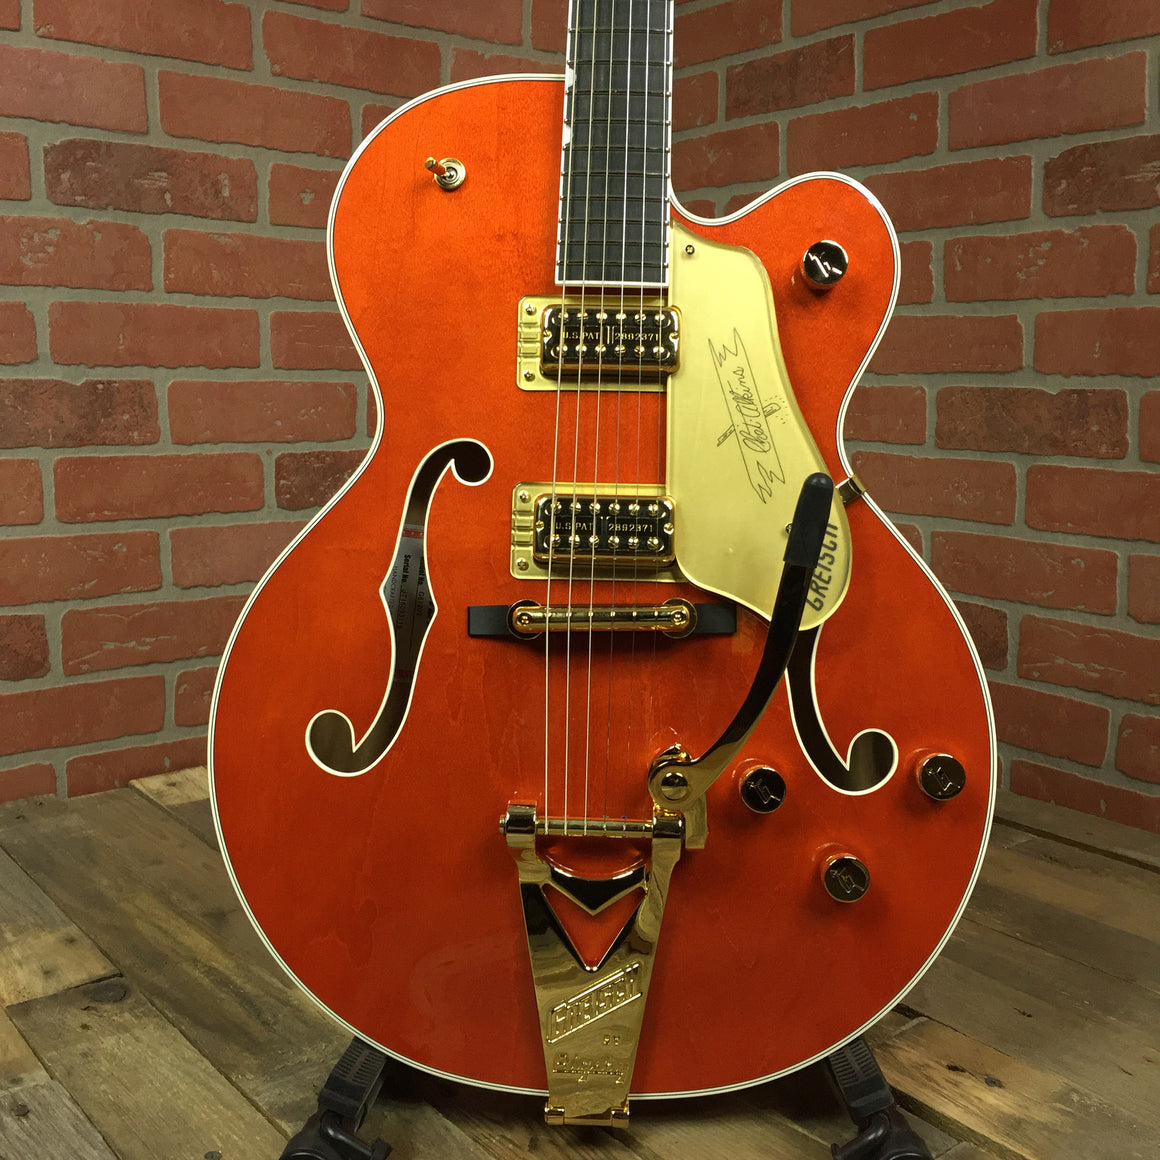 G6120T Players Edition Nashville with String-Thru Bigsby, Filter'Tron Pickups, Orange Stain